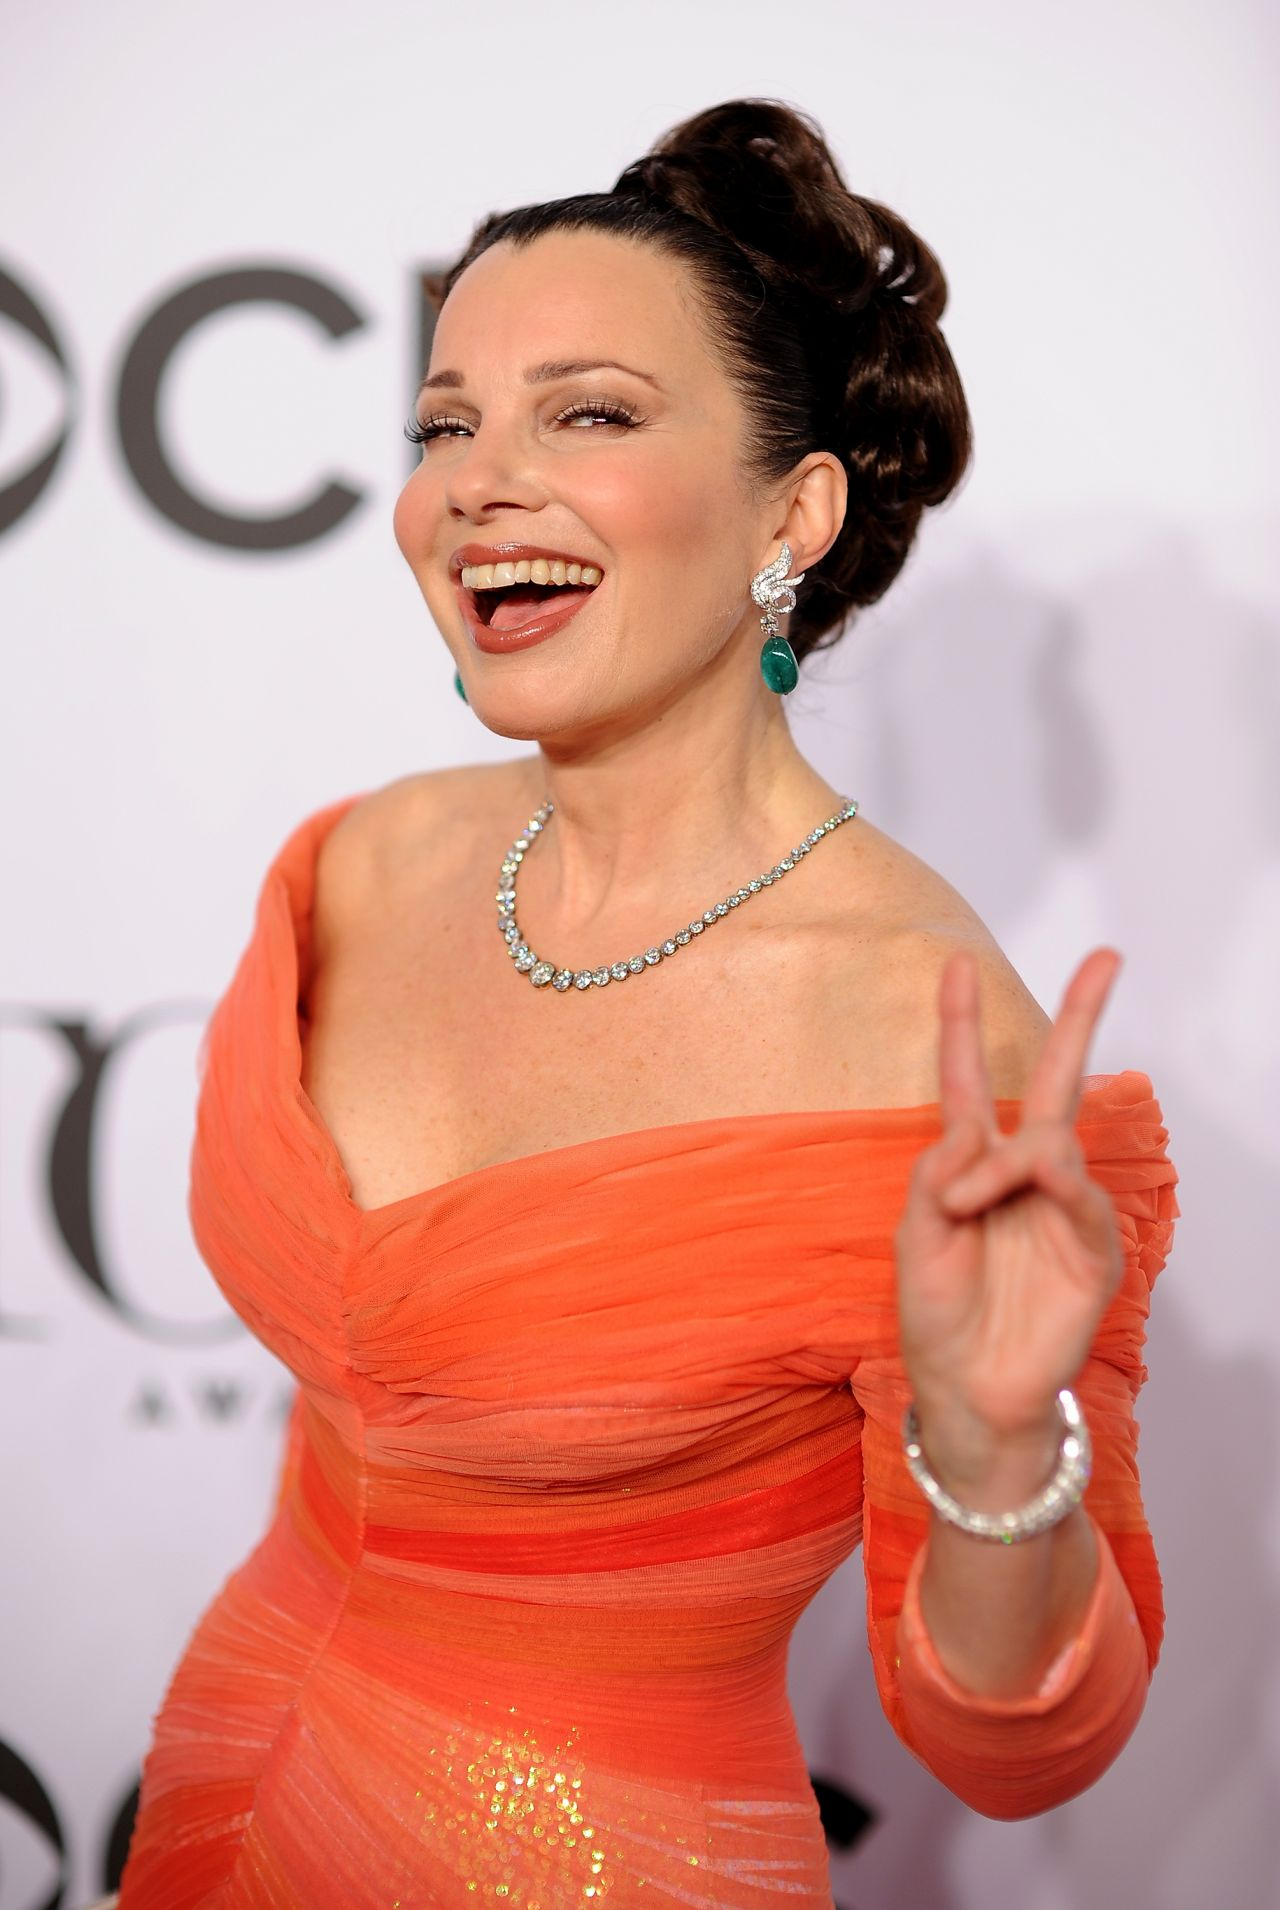 Fran Drescher - 2014 Tony Awards in New York City